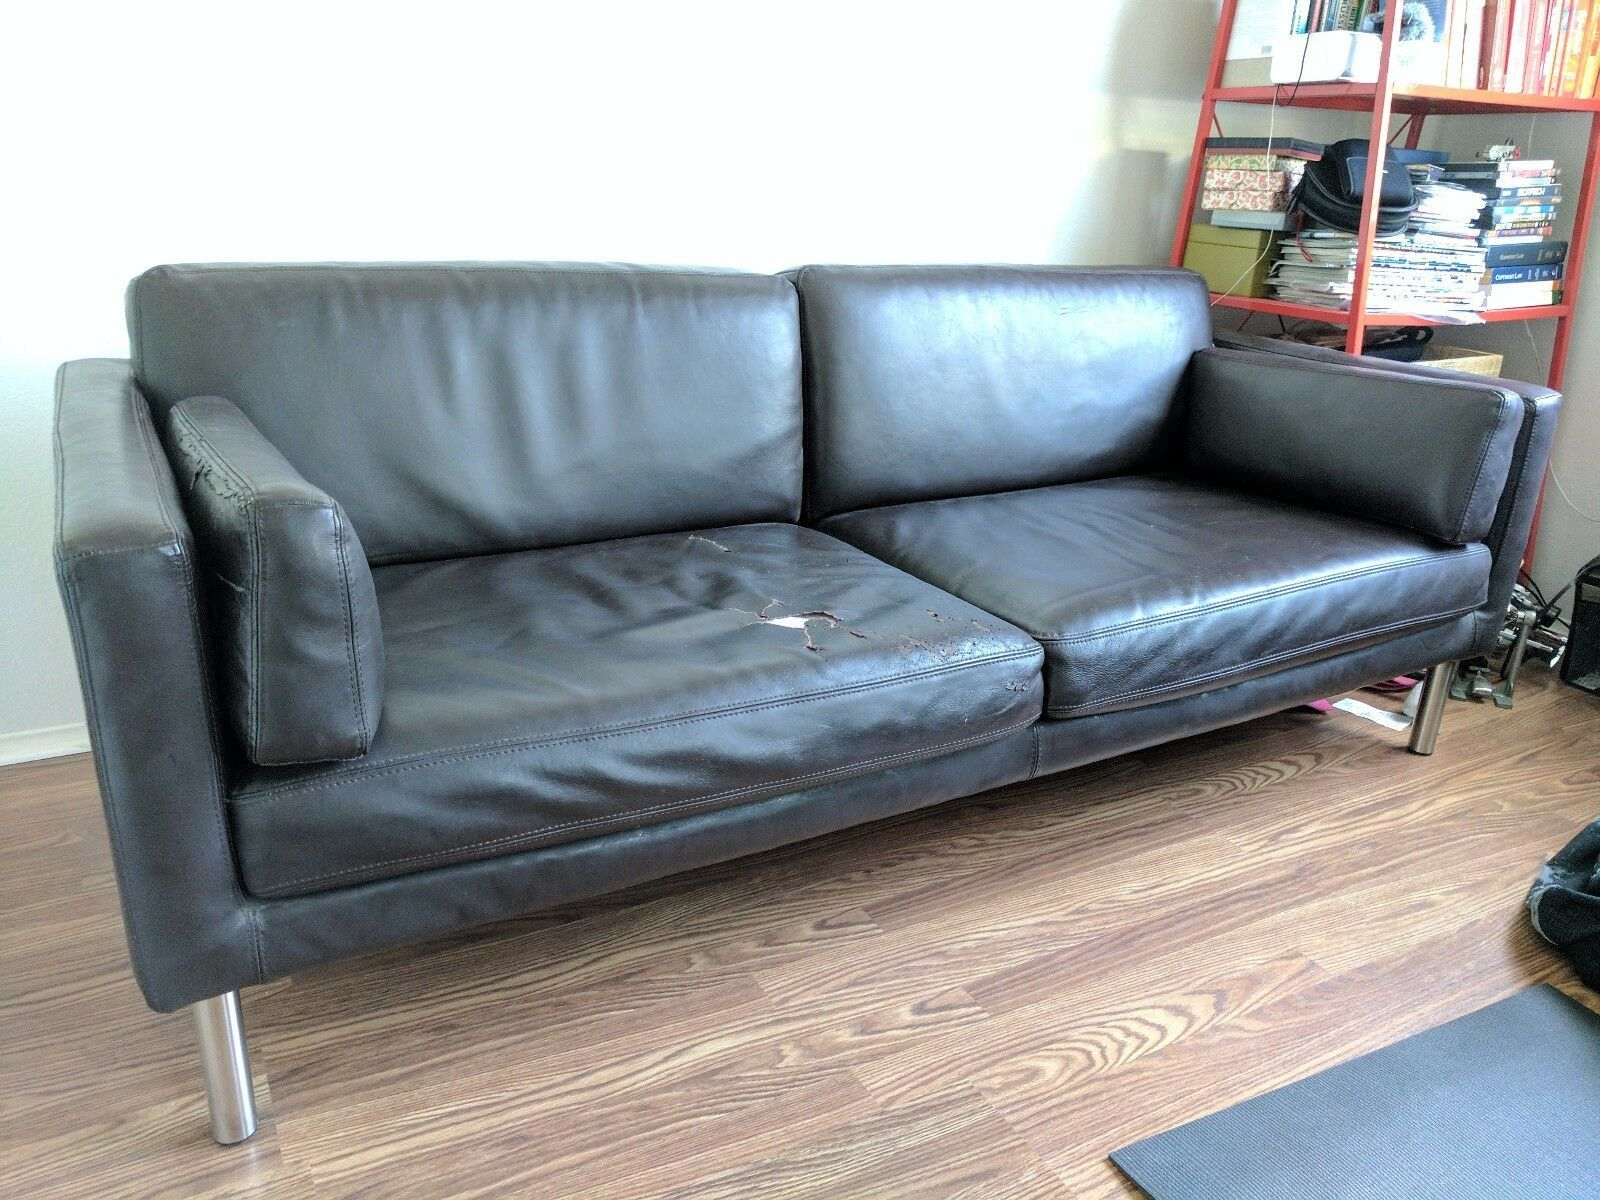 Black IKEA Leather Sofa Ikea Sofa Ideas of Ikea Sofa